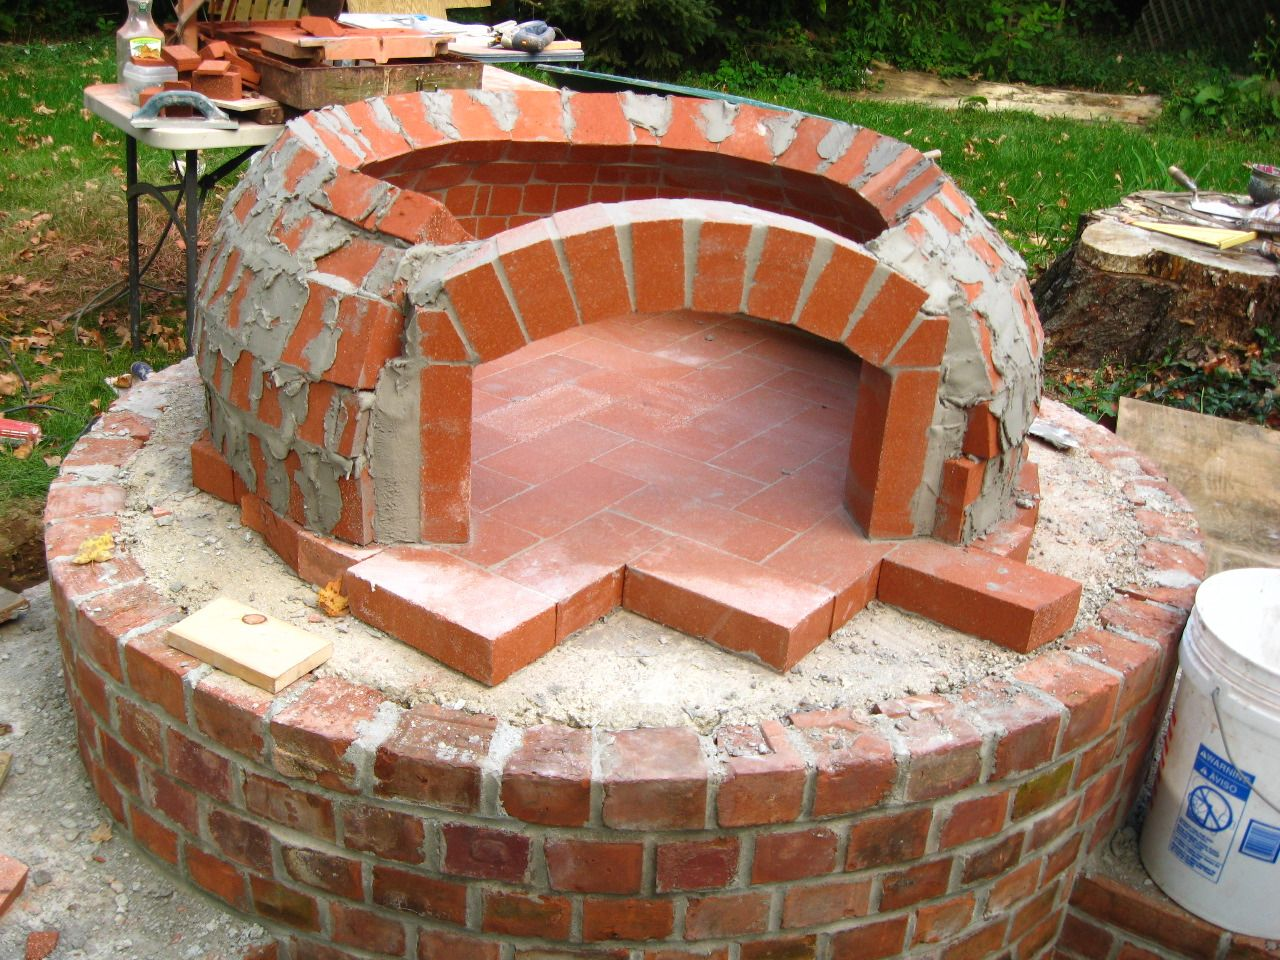 Outdoor fireplace and oven plans research pizza ovens for Giardino wok